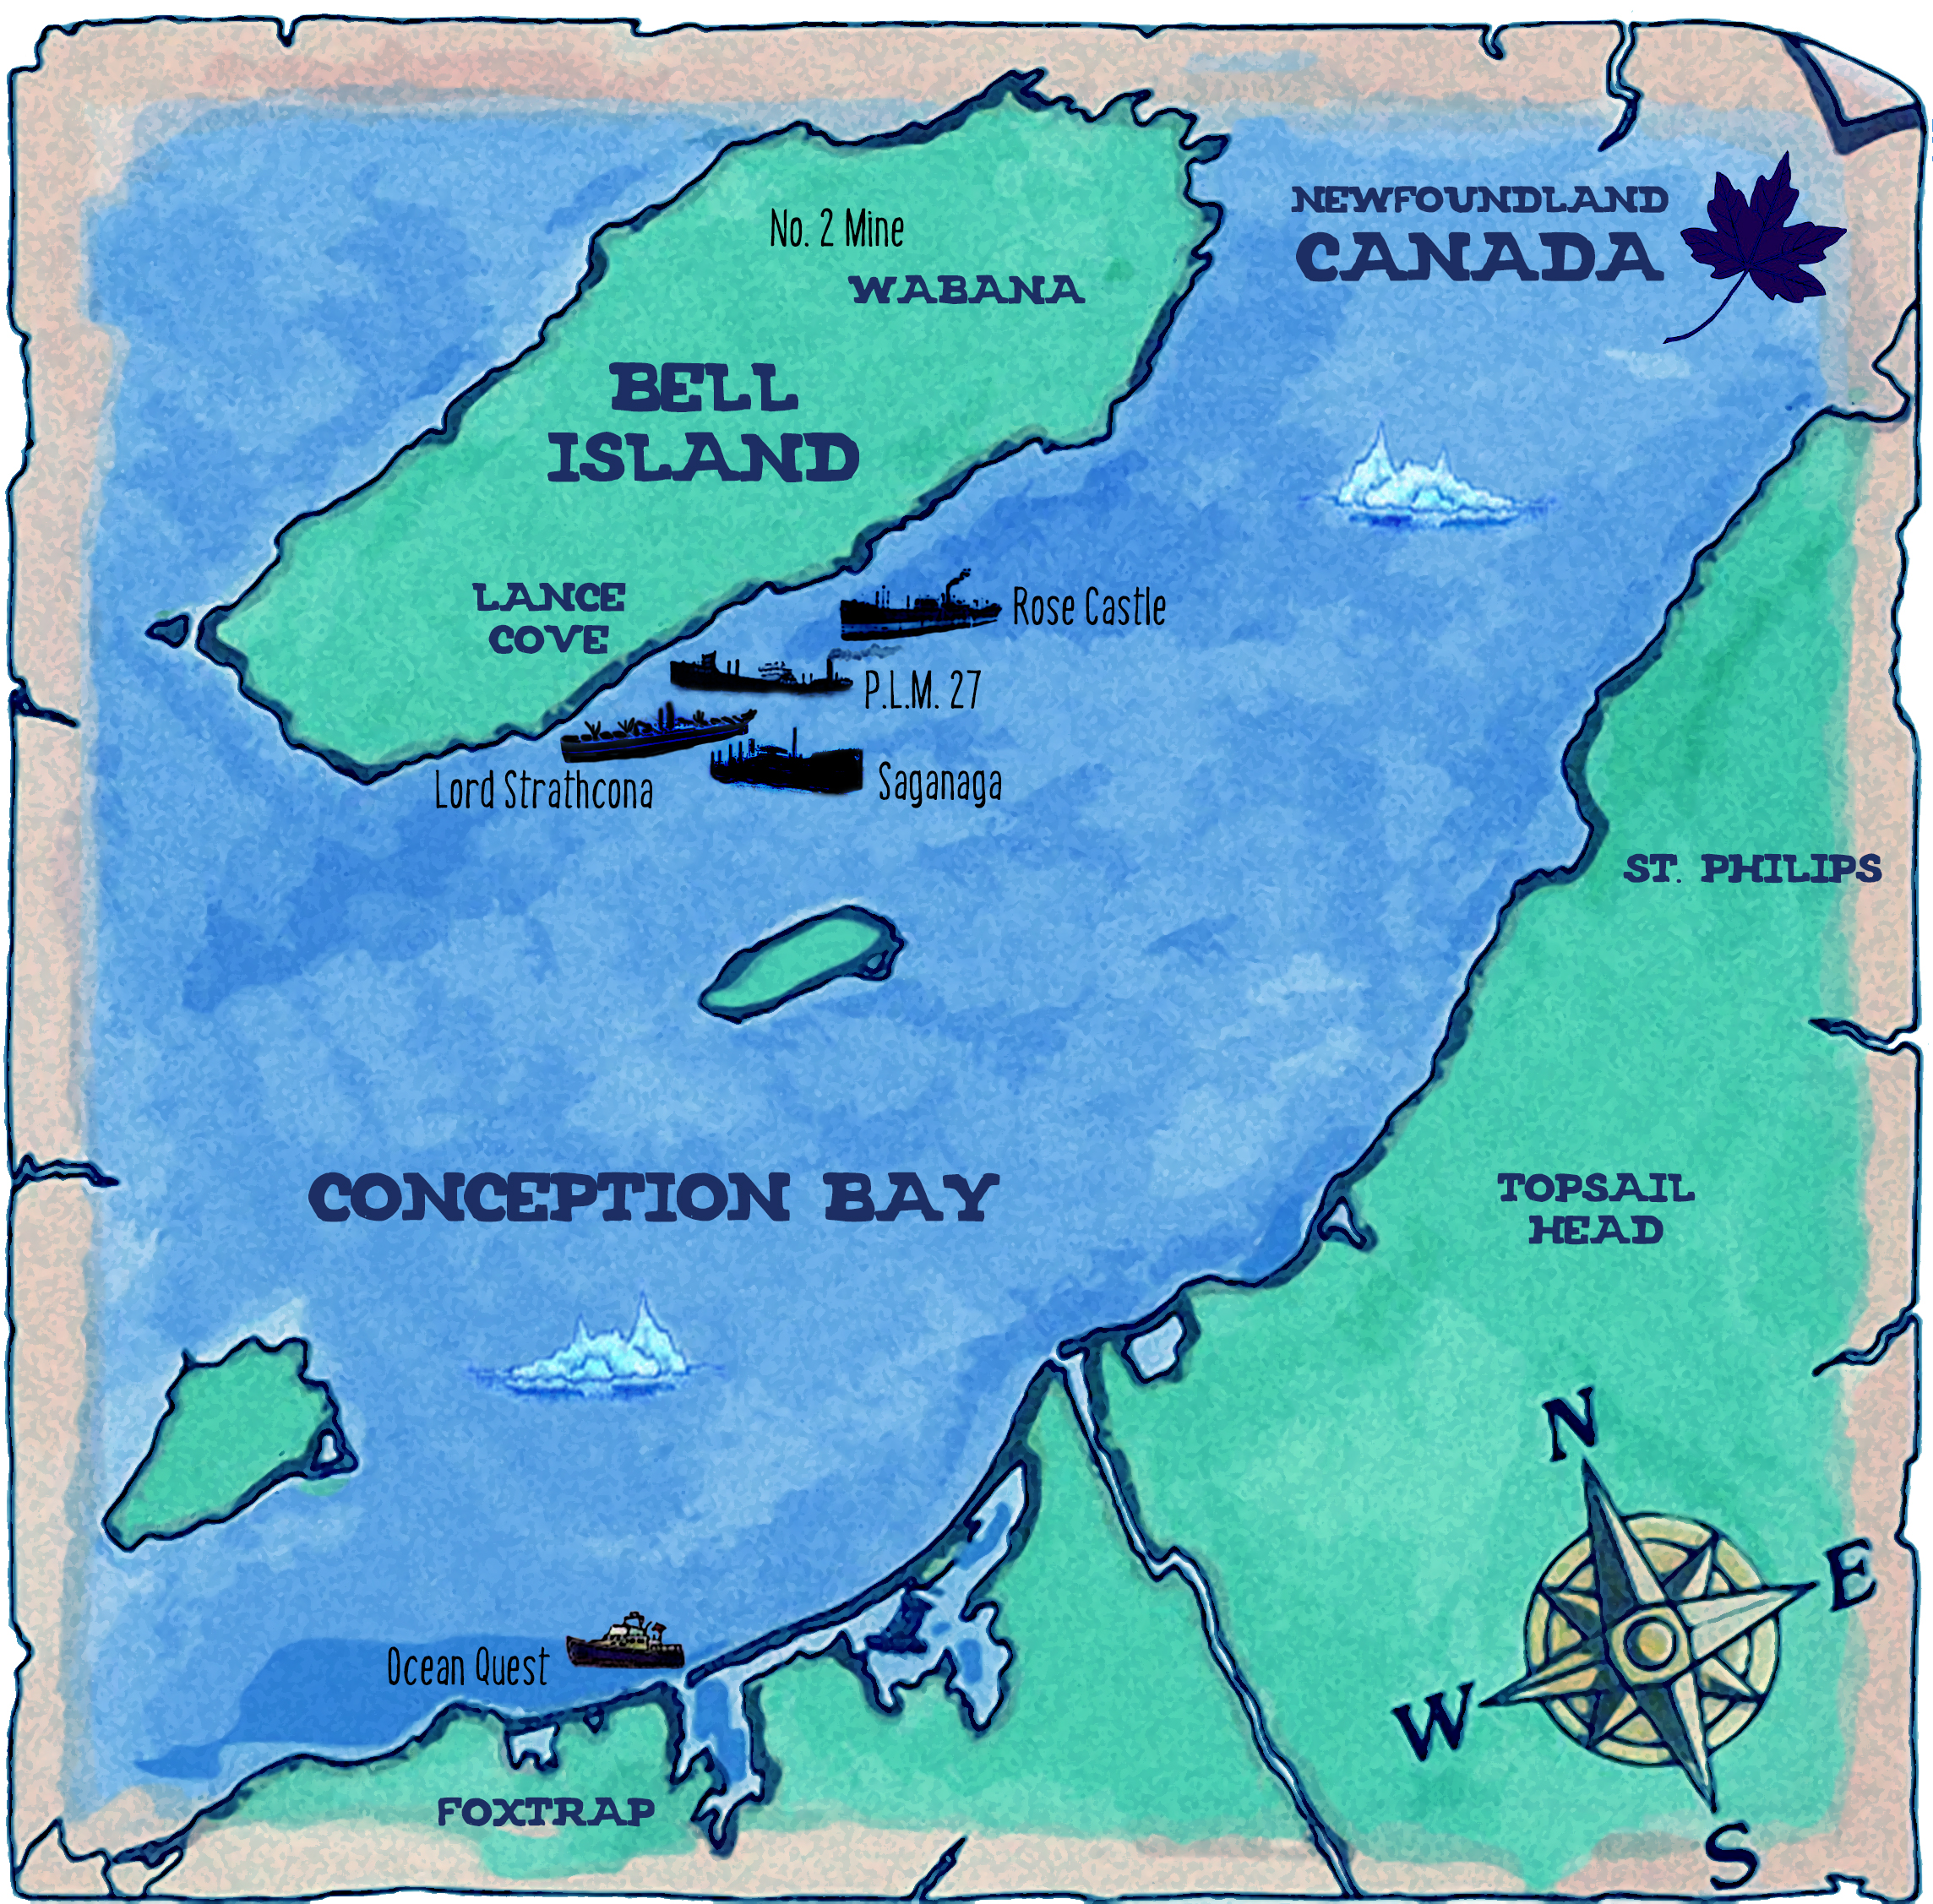 Bell island newfoundland intotheplanet gumiabroncs Images